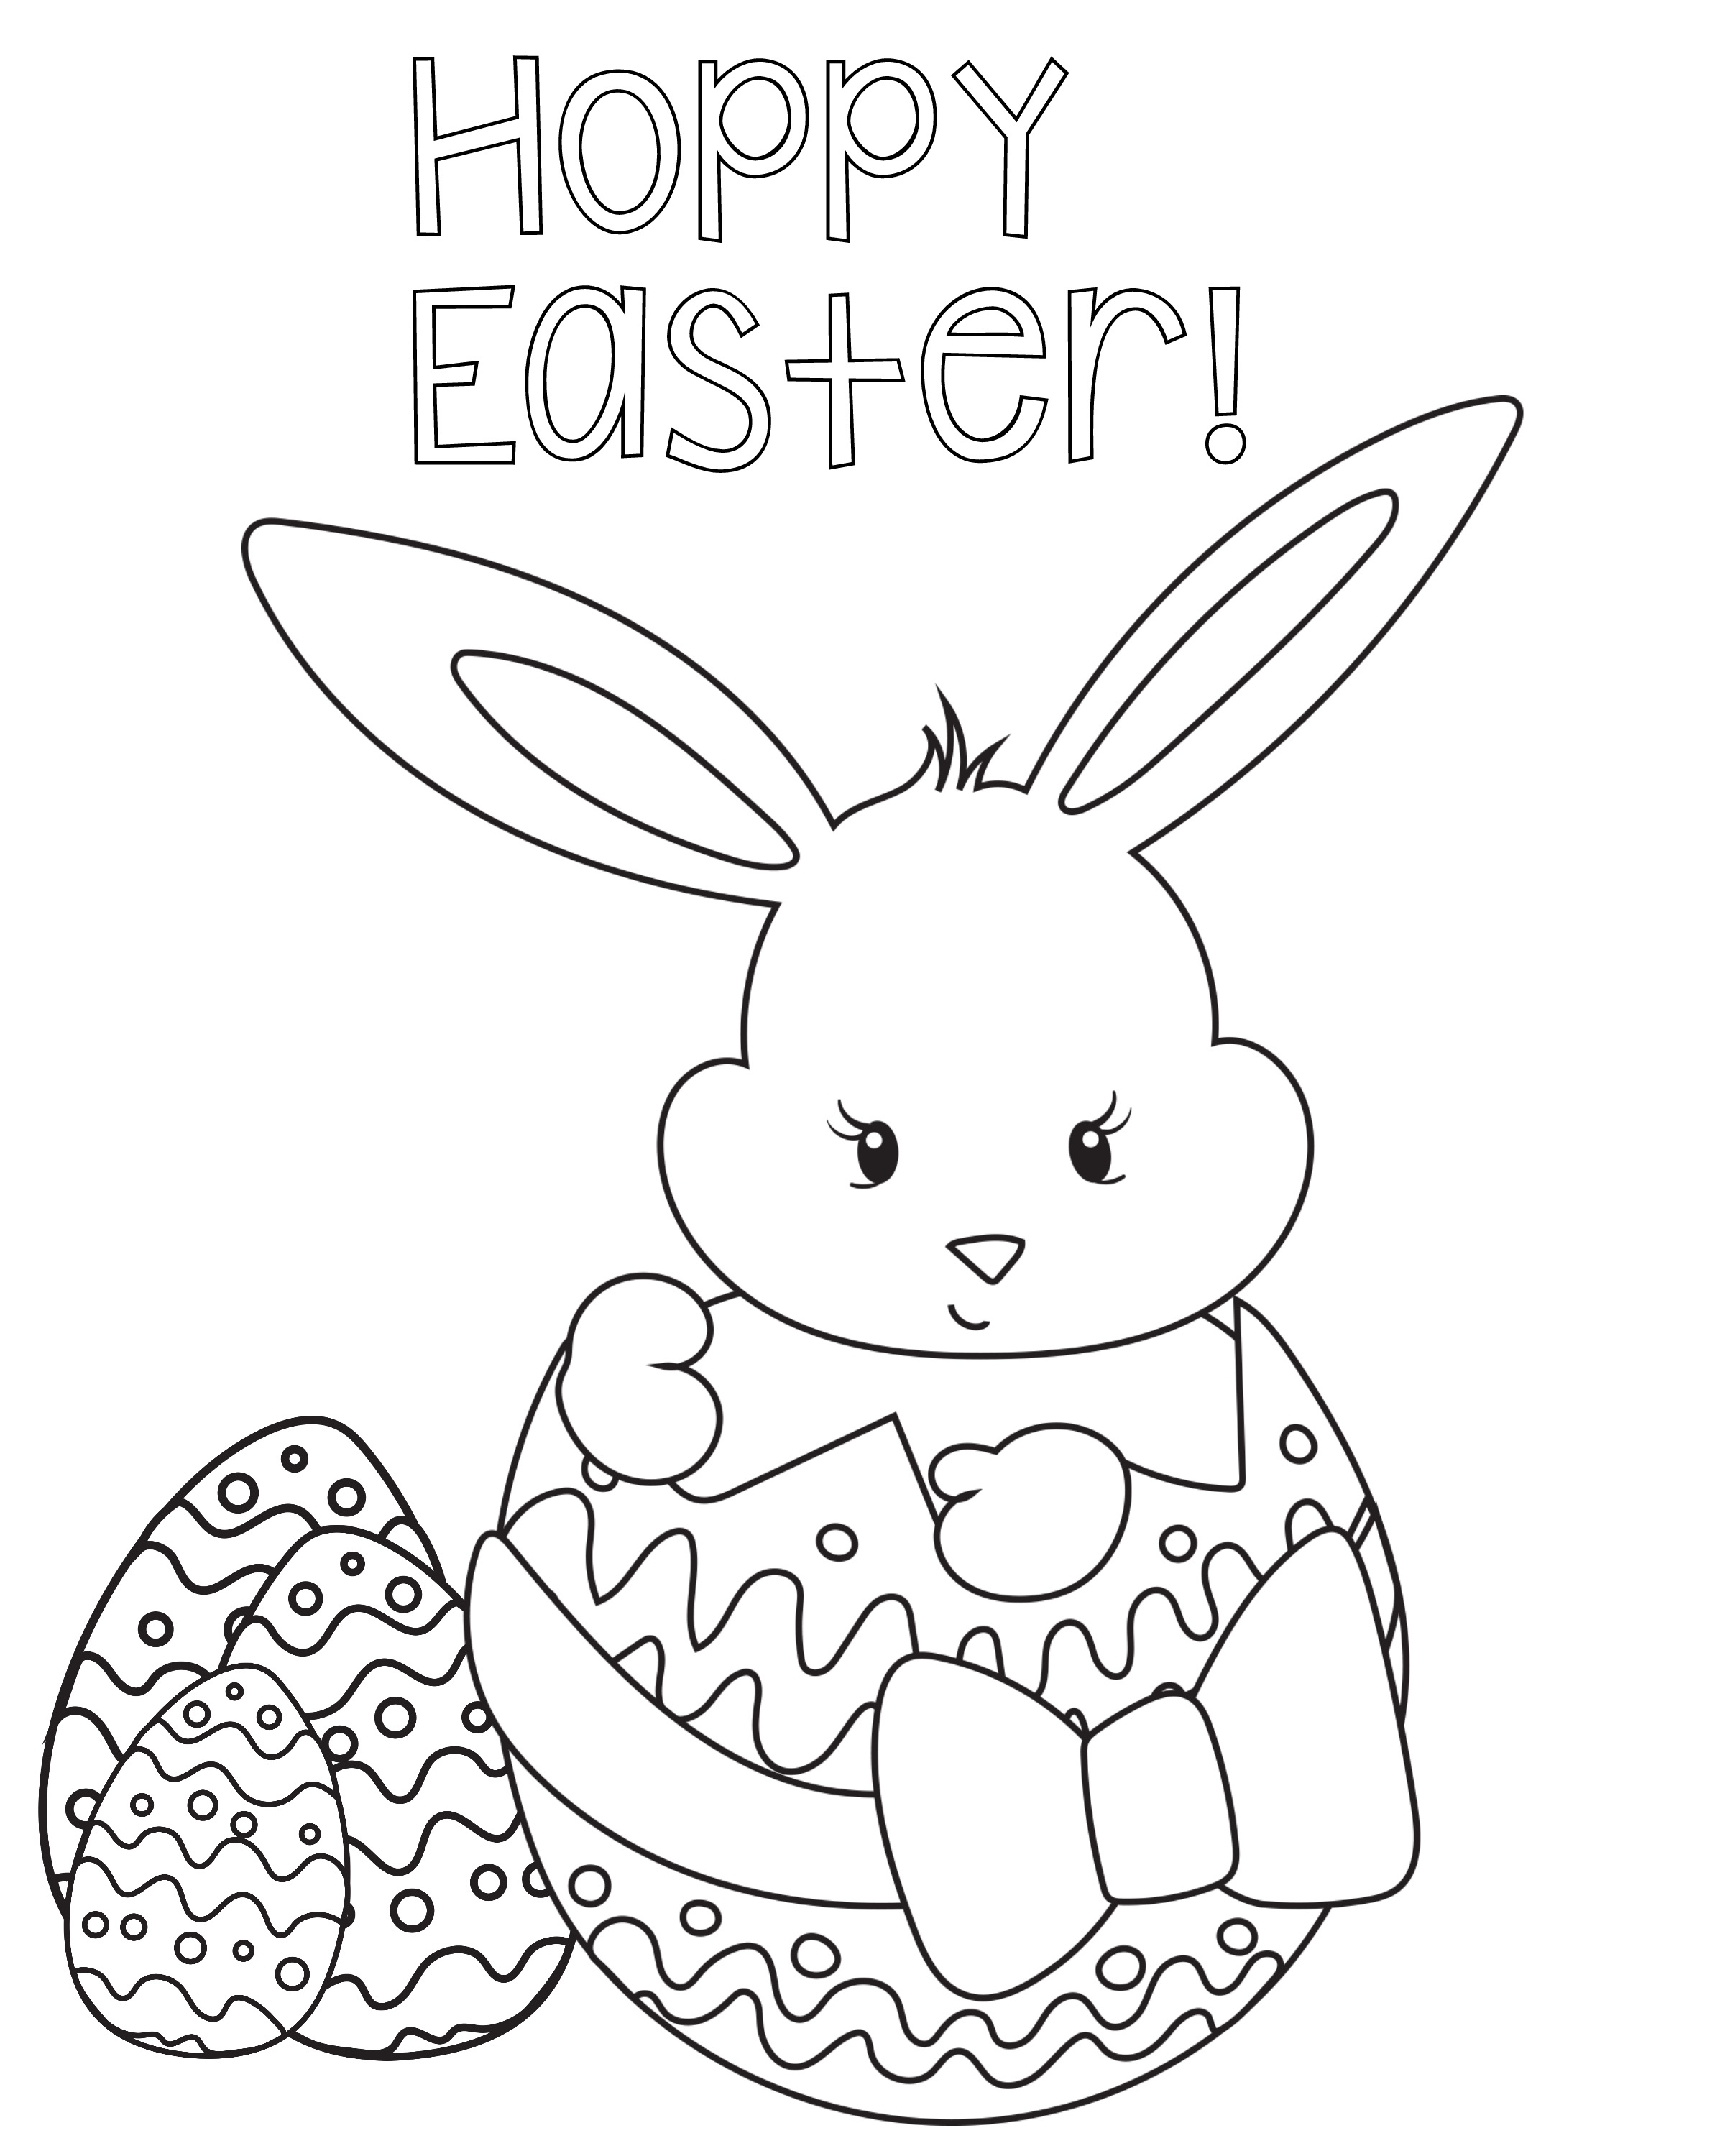 Printable Easter Coloring Pages Coloring Pages Download Rabbit - Free Printable Easter Coloring Pictures